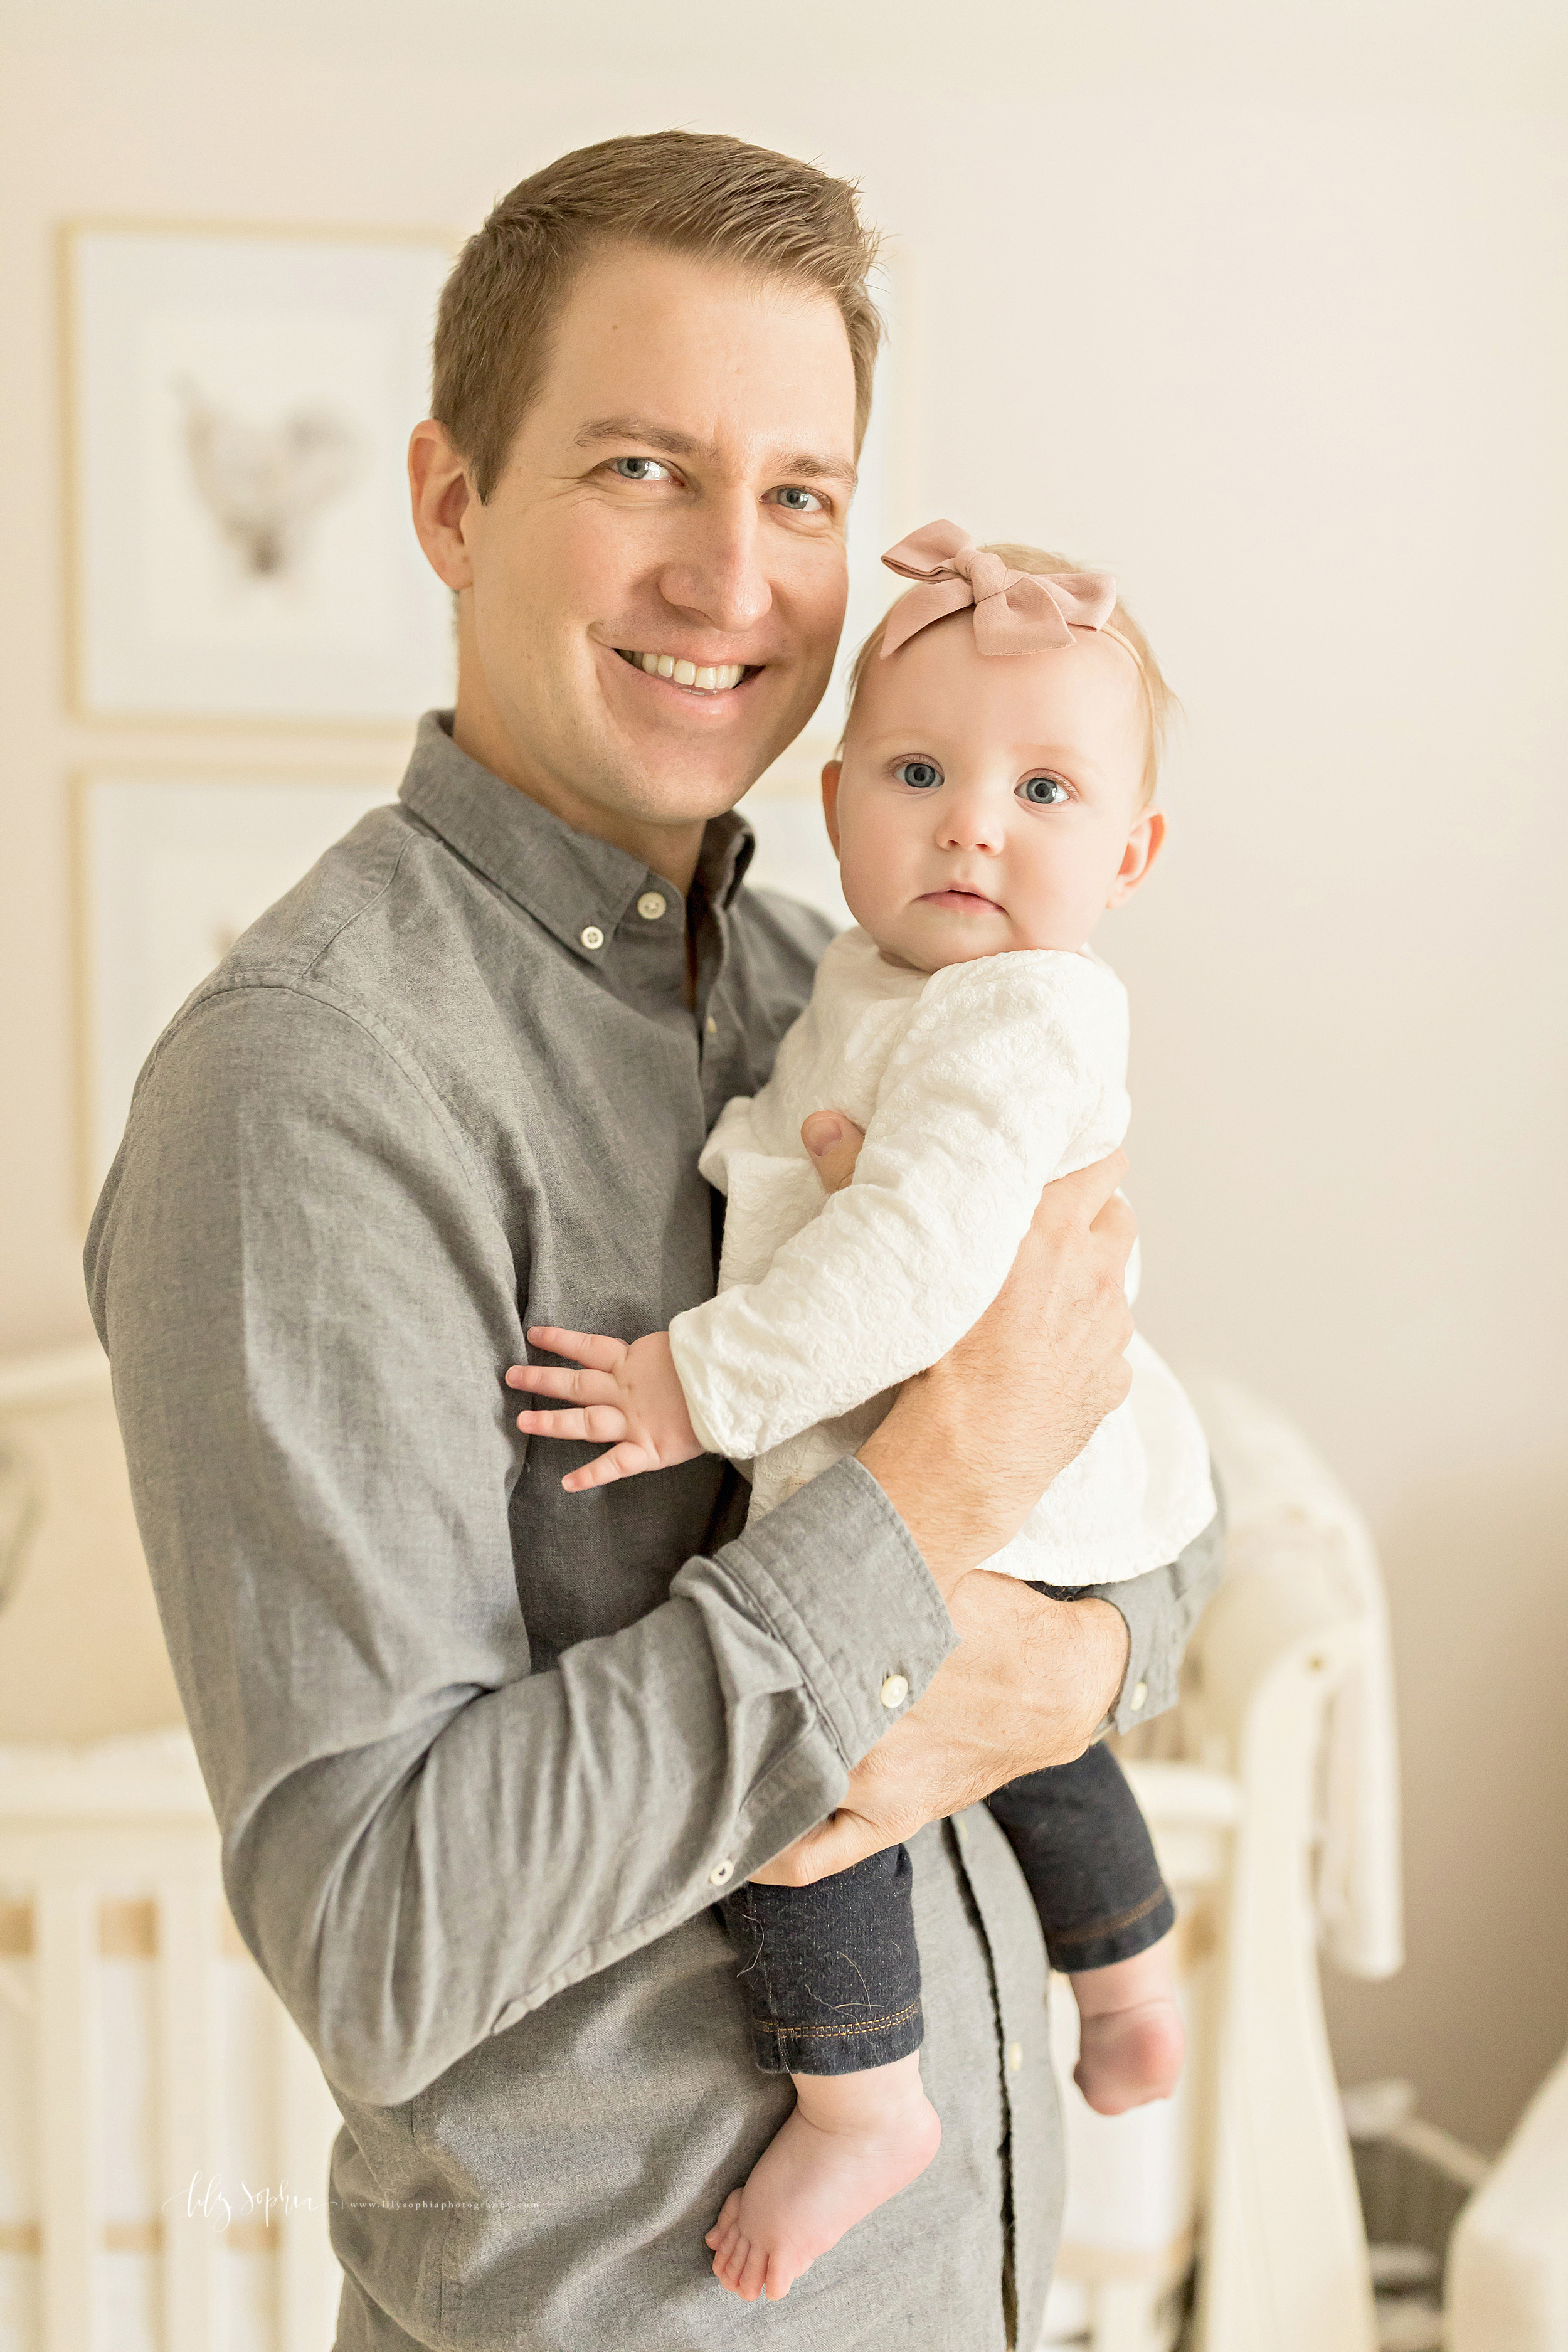 atlanta-midtown-brookhaven-ashford-dunwoody-virginia-highlands-roswell-decatur-lily-sophia-photography-in-home-six-month-milestone-family-lifestyle-session-sandy-springs_0669.jpg